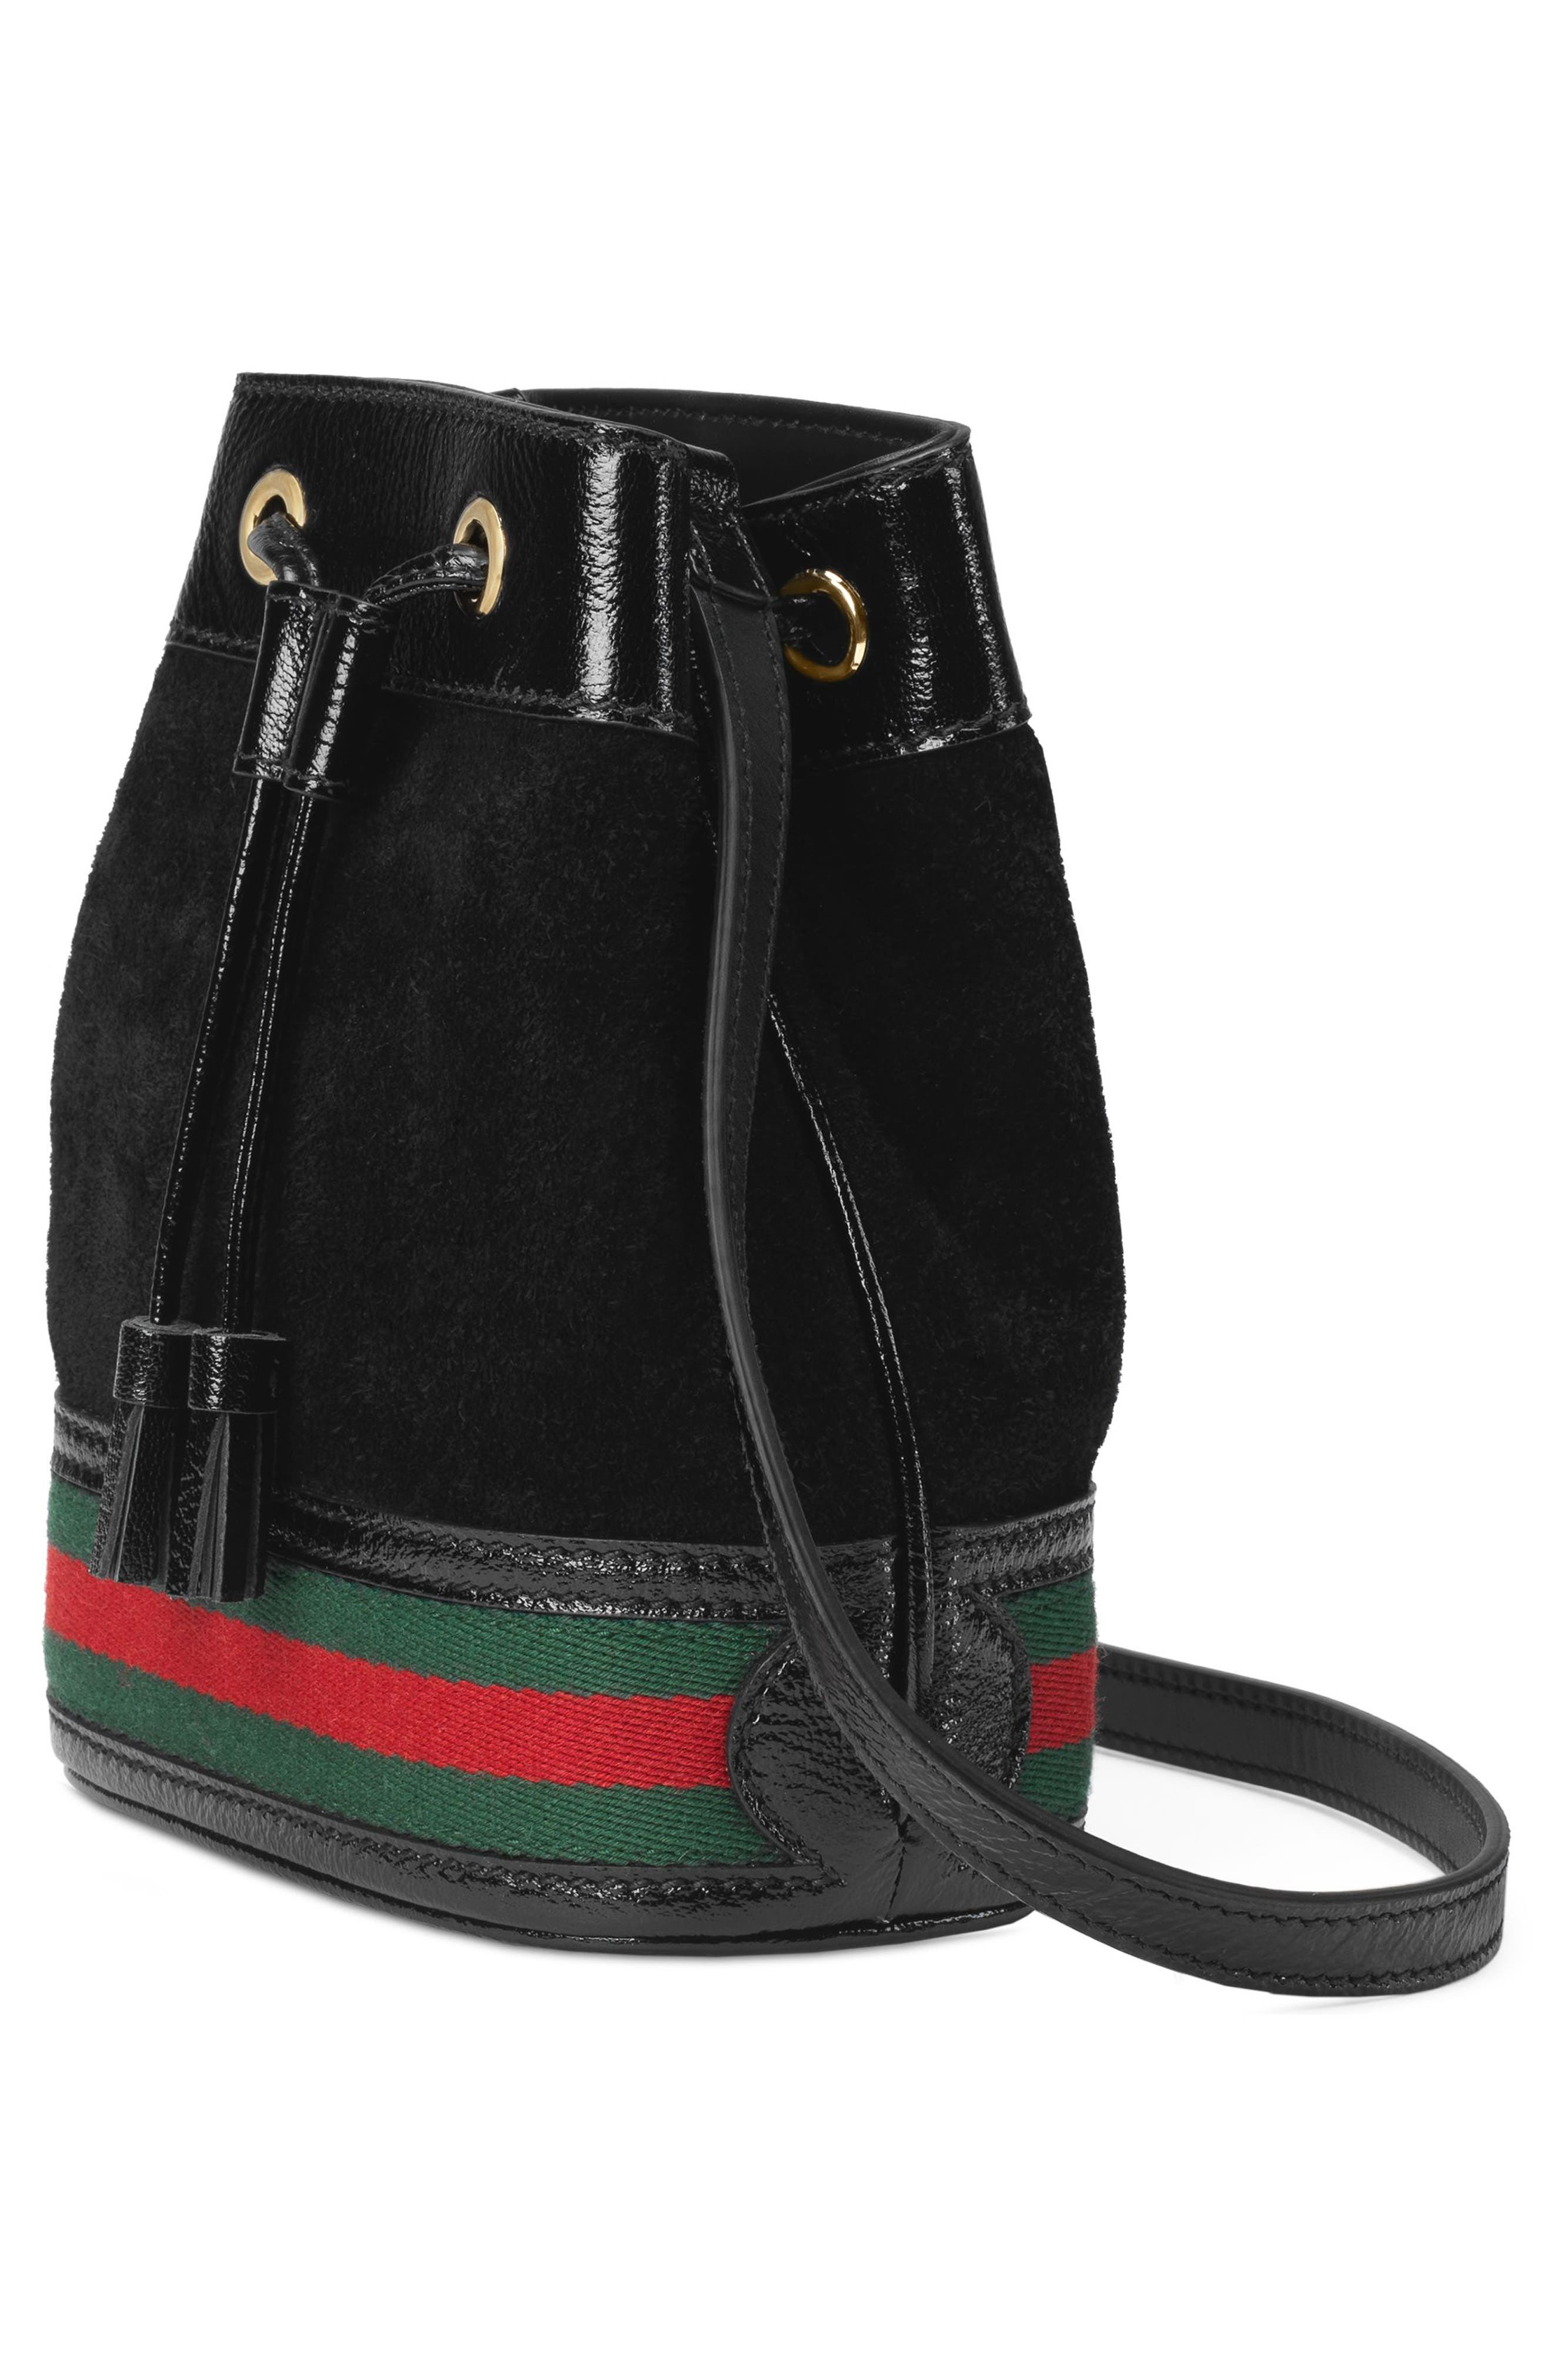 Mini Ophidia Suede & Leather Bucket Bag,                             Alternate thumbnail 4, color,                             NERO/ VERT/ RED